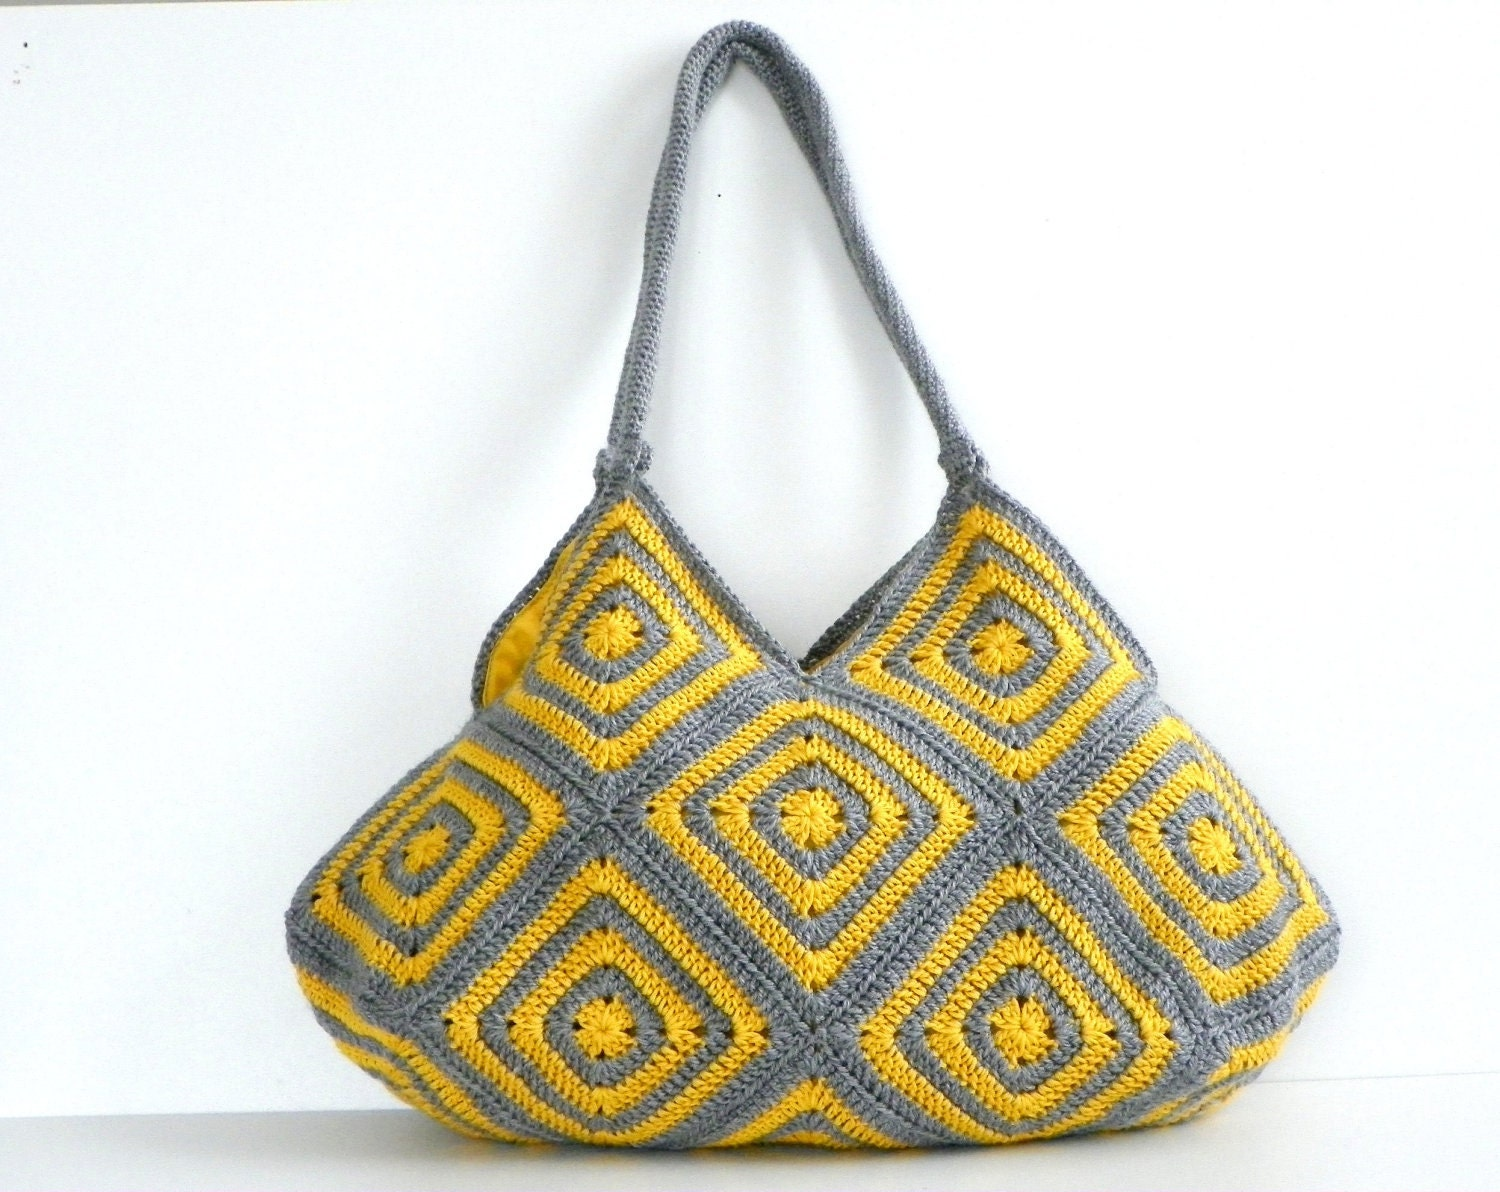 NzLbags New - Summer Bag Afghan Crochet Bag, Handbag - Shoulder Bag Nr-0183